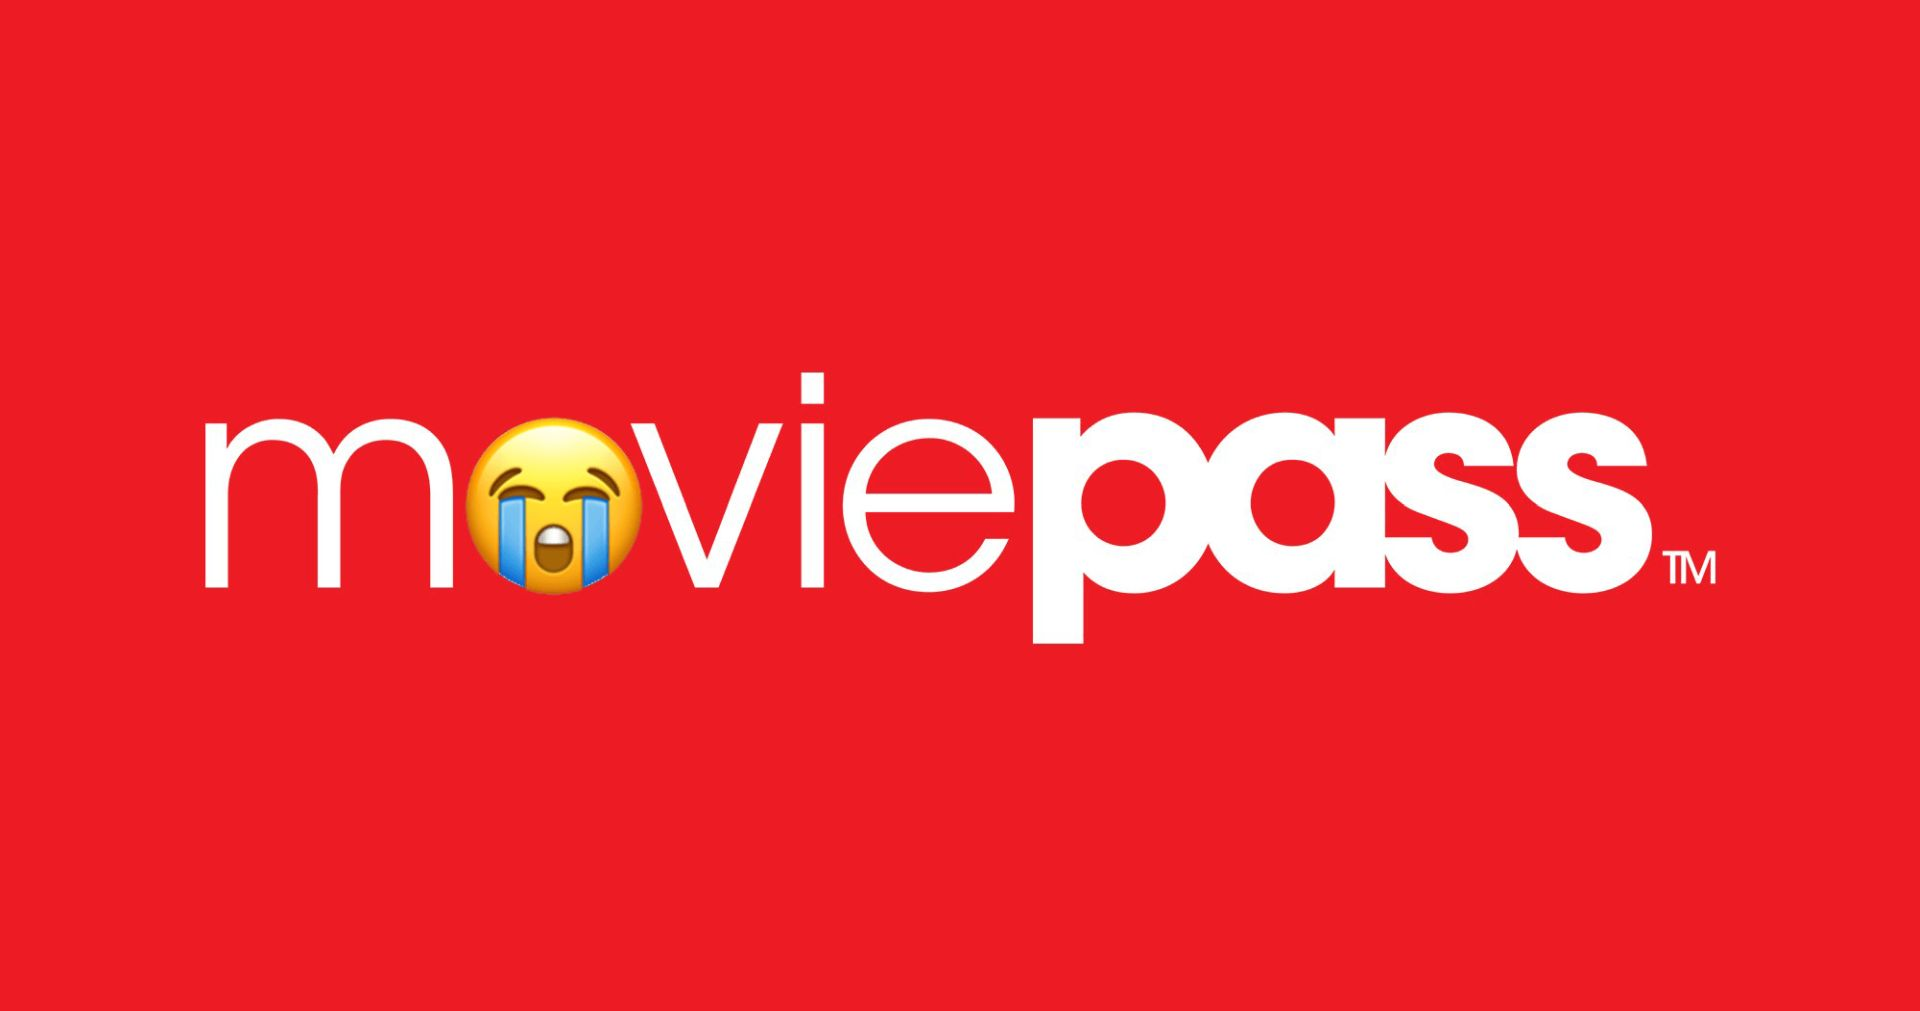 MoviePass is Facing a Class Action Lawsuit From holders